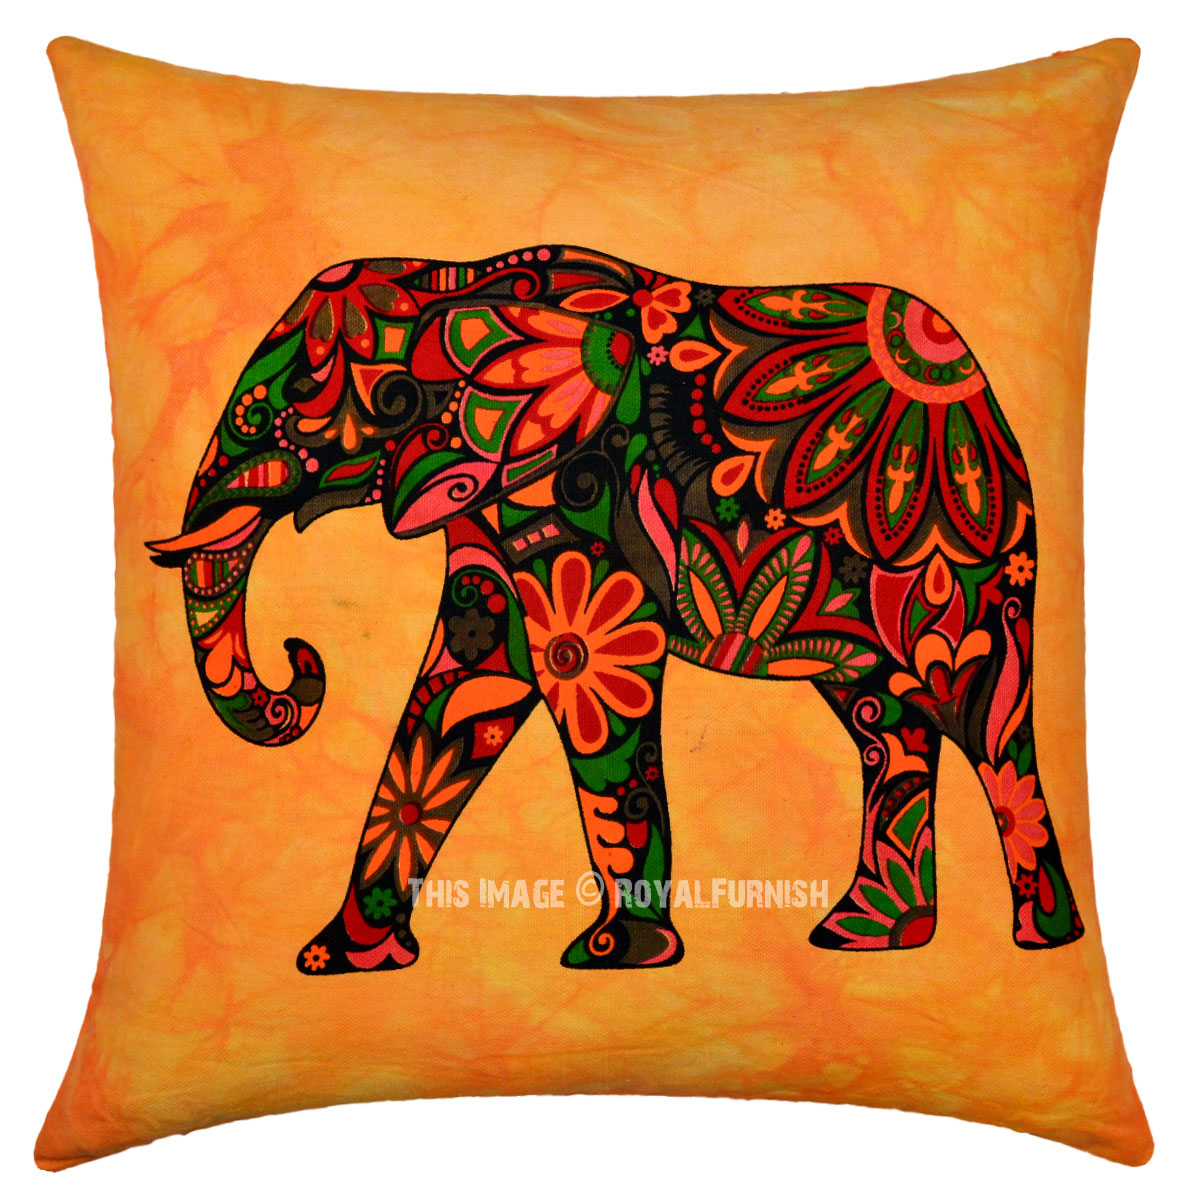 Orange Asian Elephant Tie Dye Hippie Decorative Throw Pillow Cover 16X16 Inch - RoyalFurnish.com